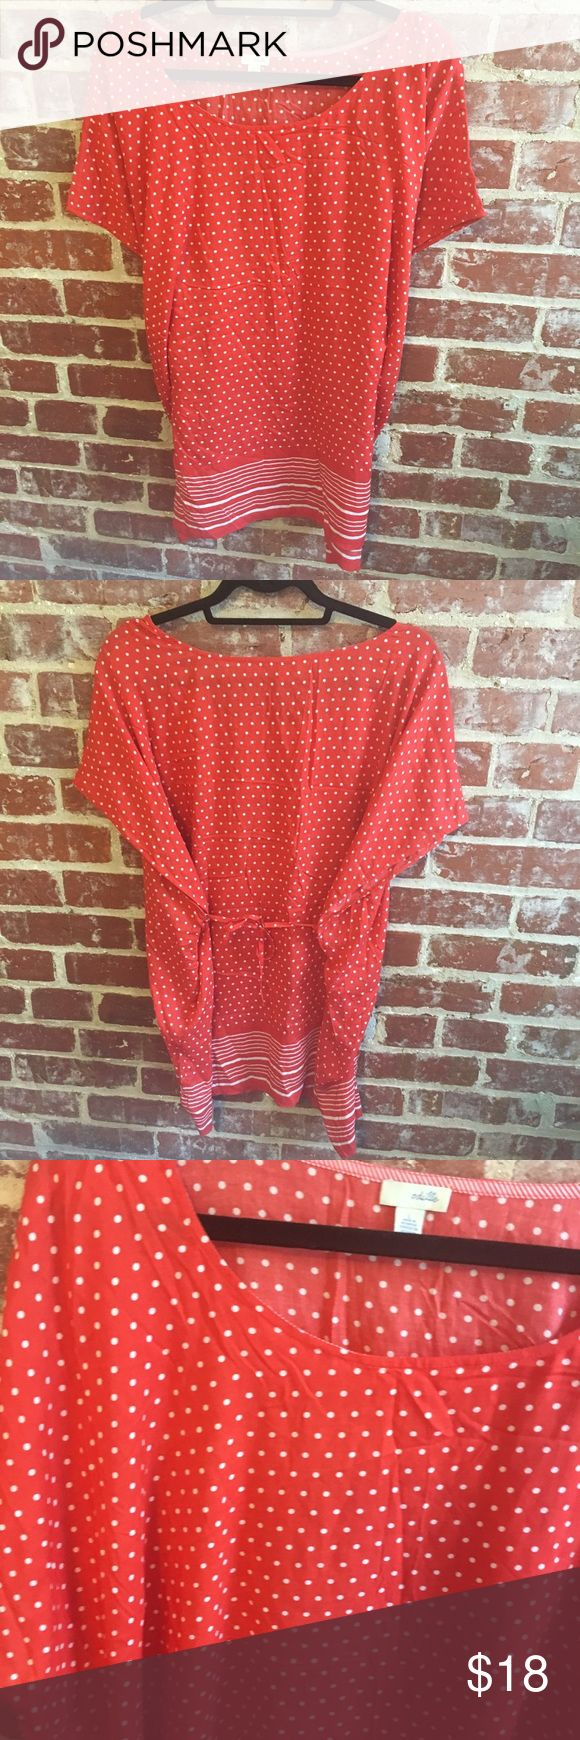 Anthropologie Odille Red Polka Dot Top Size large. Ties in back. Arms dip low. So pretty! Anthropologie Tops Tees - Short Sleeve